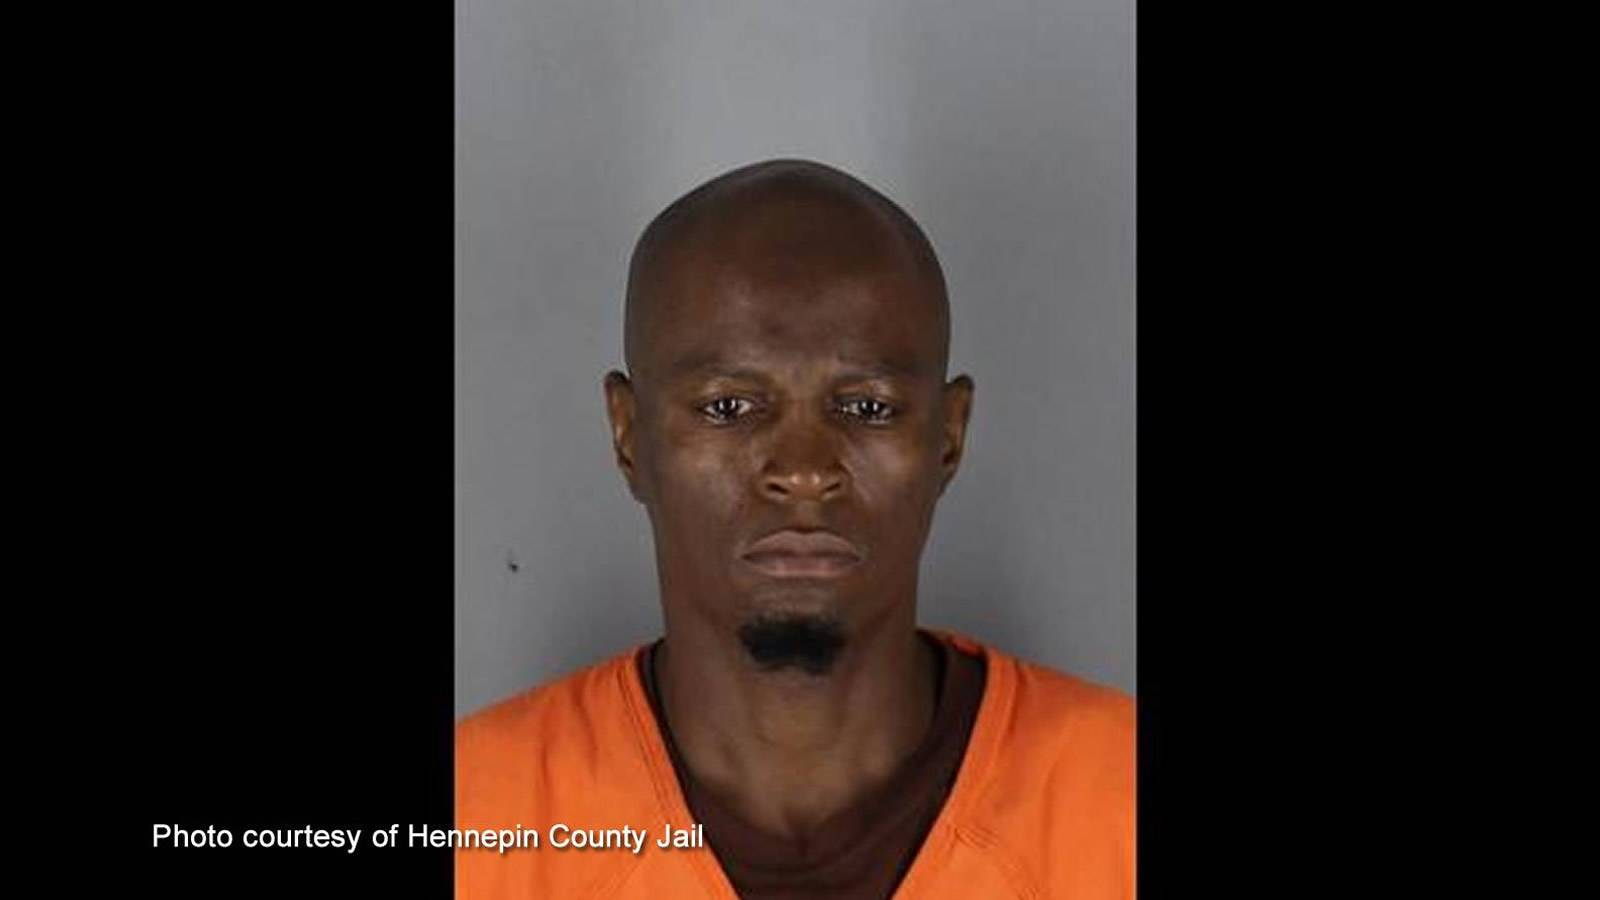 MAN WHO FATALLY STABBED WOMAN IN PARKING RAMP GETS 24 YEARS IN PRISON